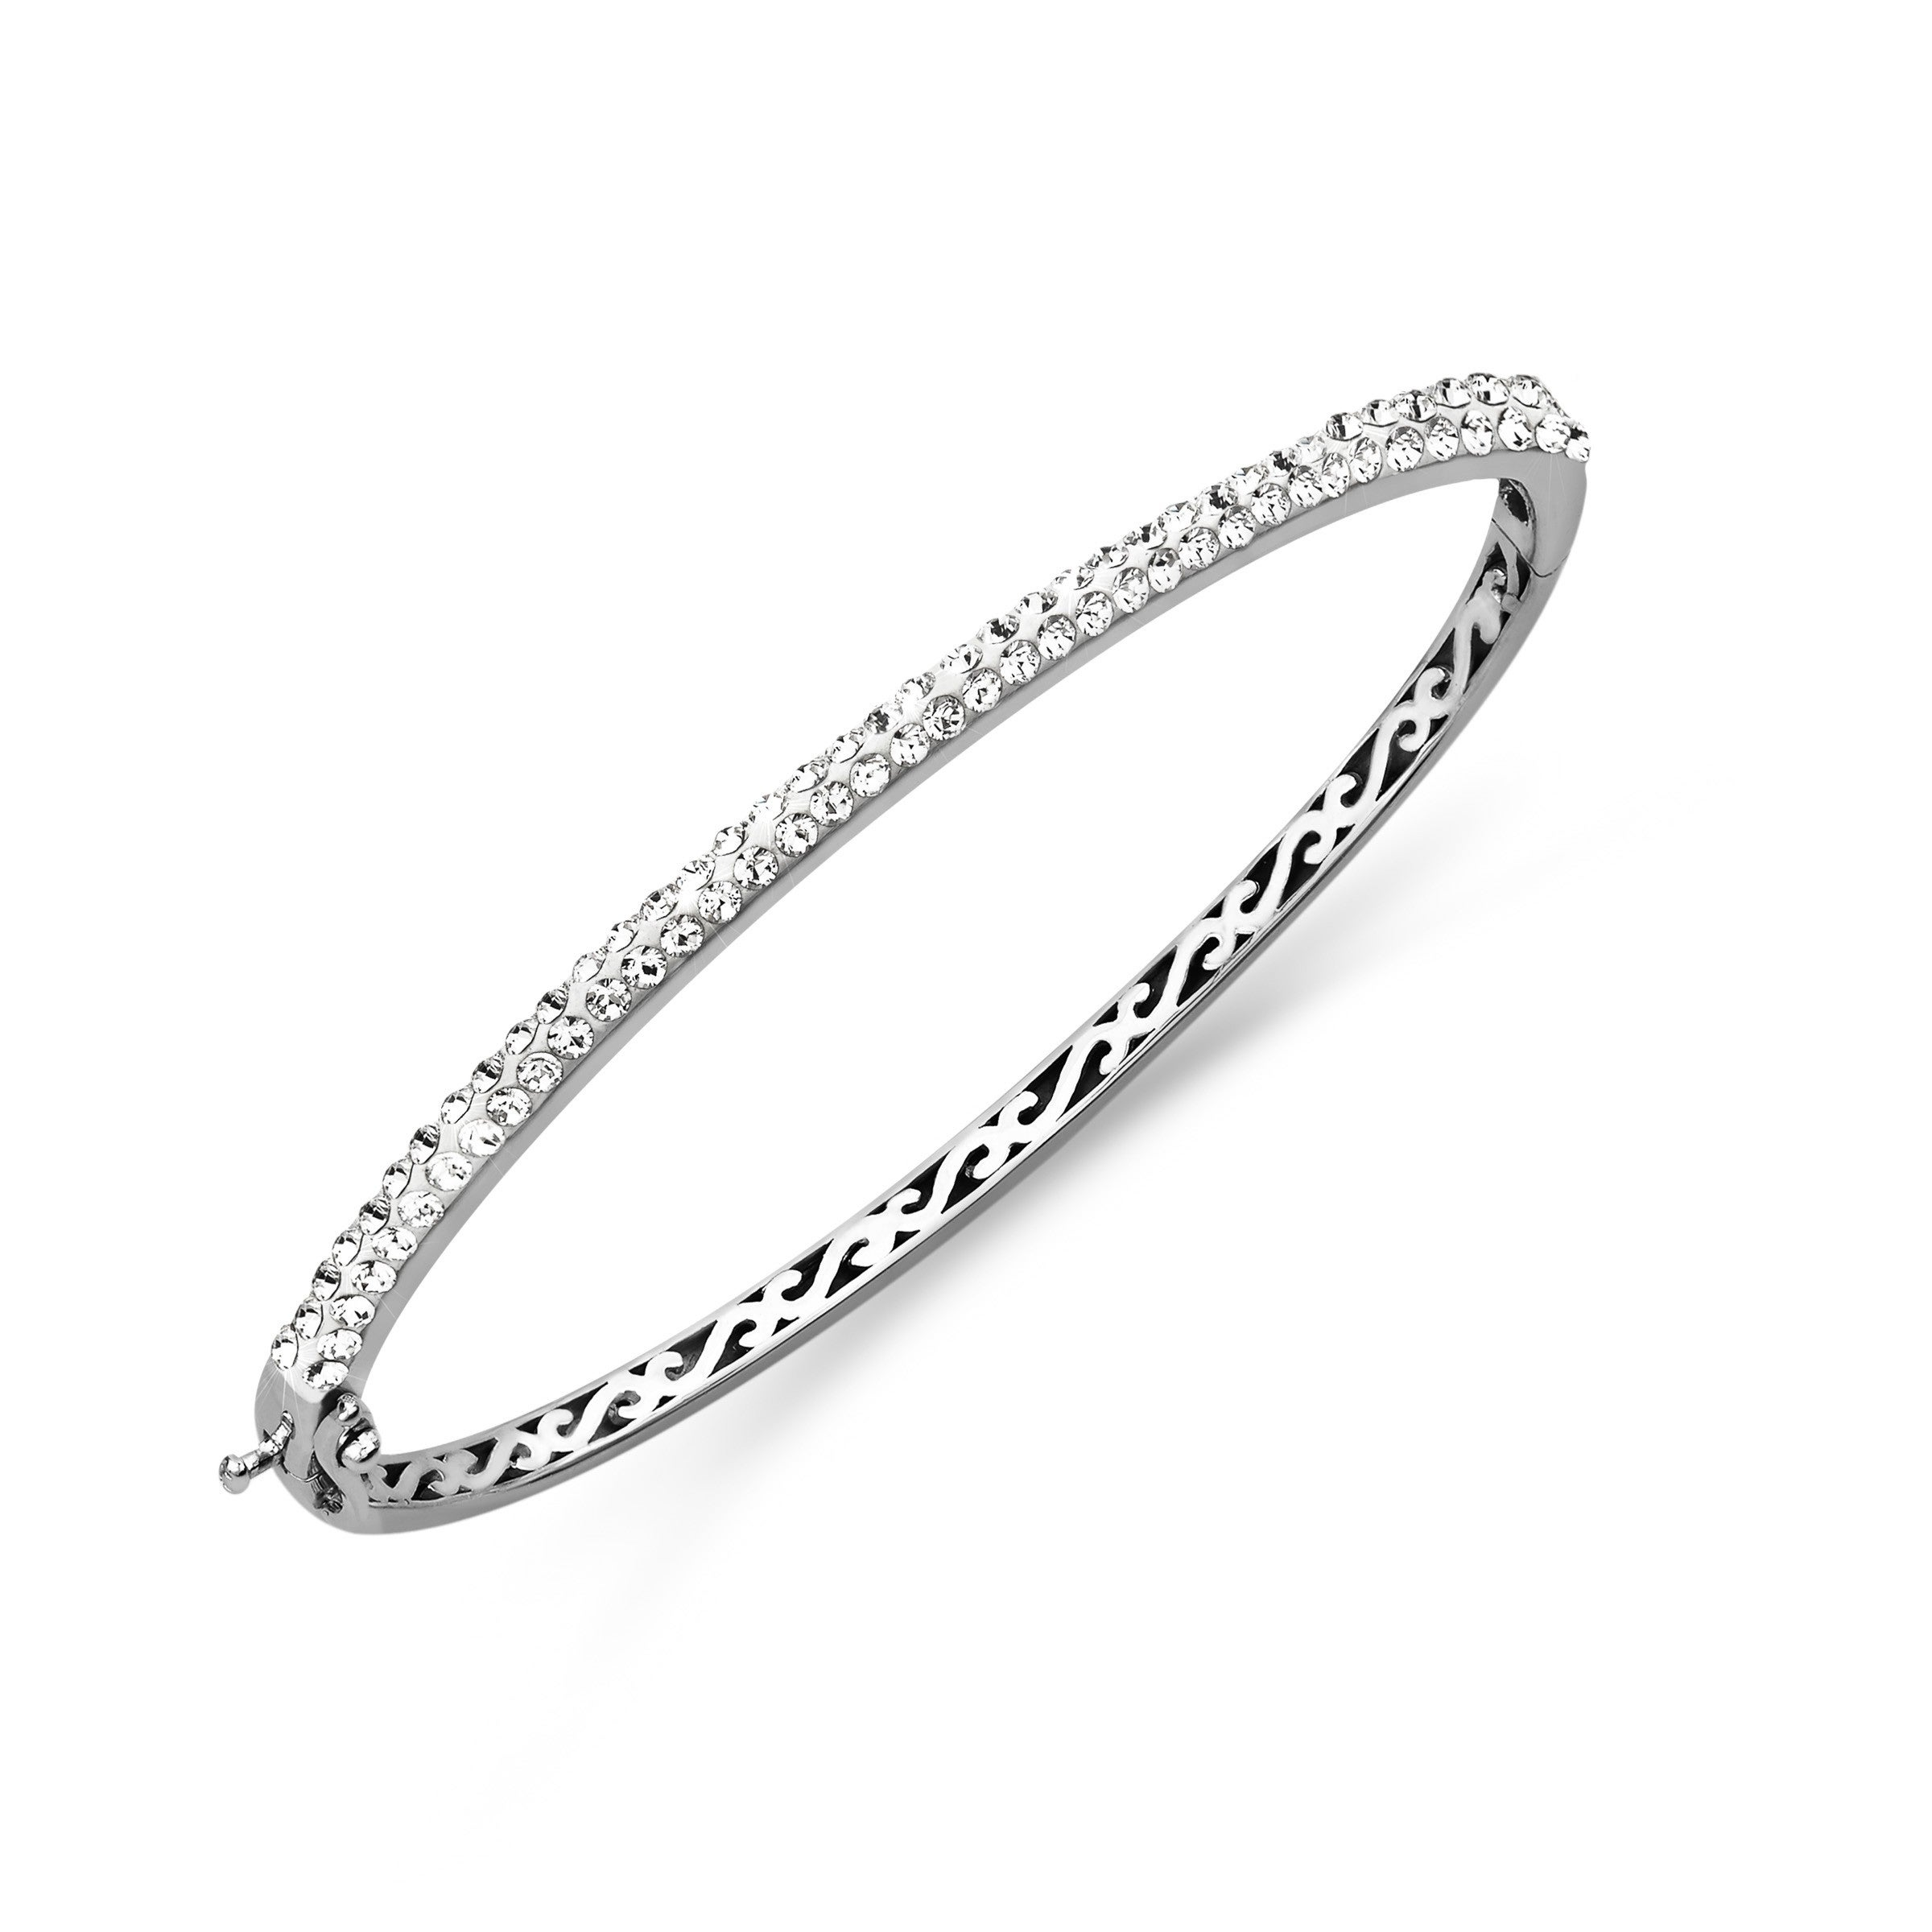 Shop Crystaluxe Bangle with White Swarovski Crystals in Sterling Silver -  On Sale - Free Shipping Today - Overstock - 18847647 8573157a71